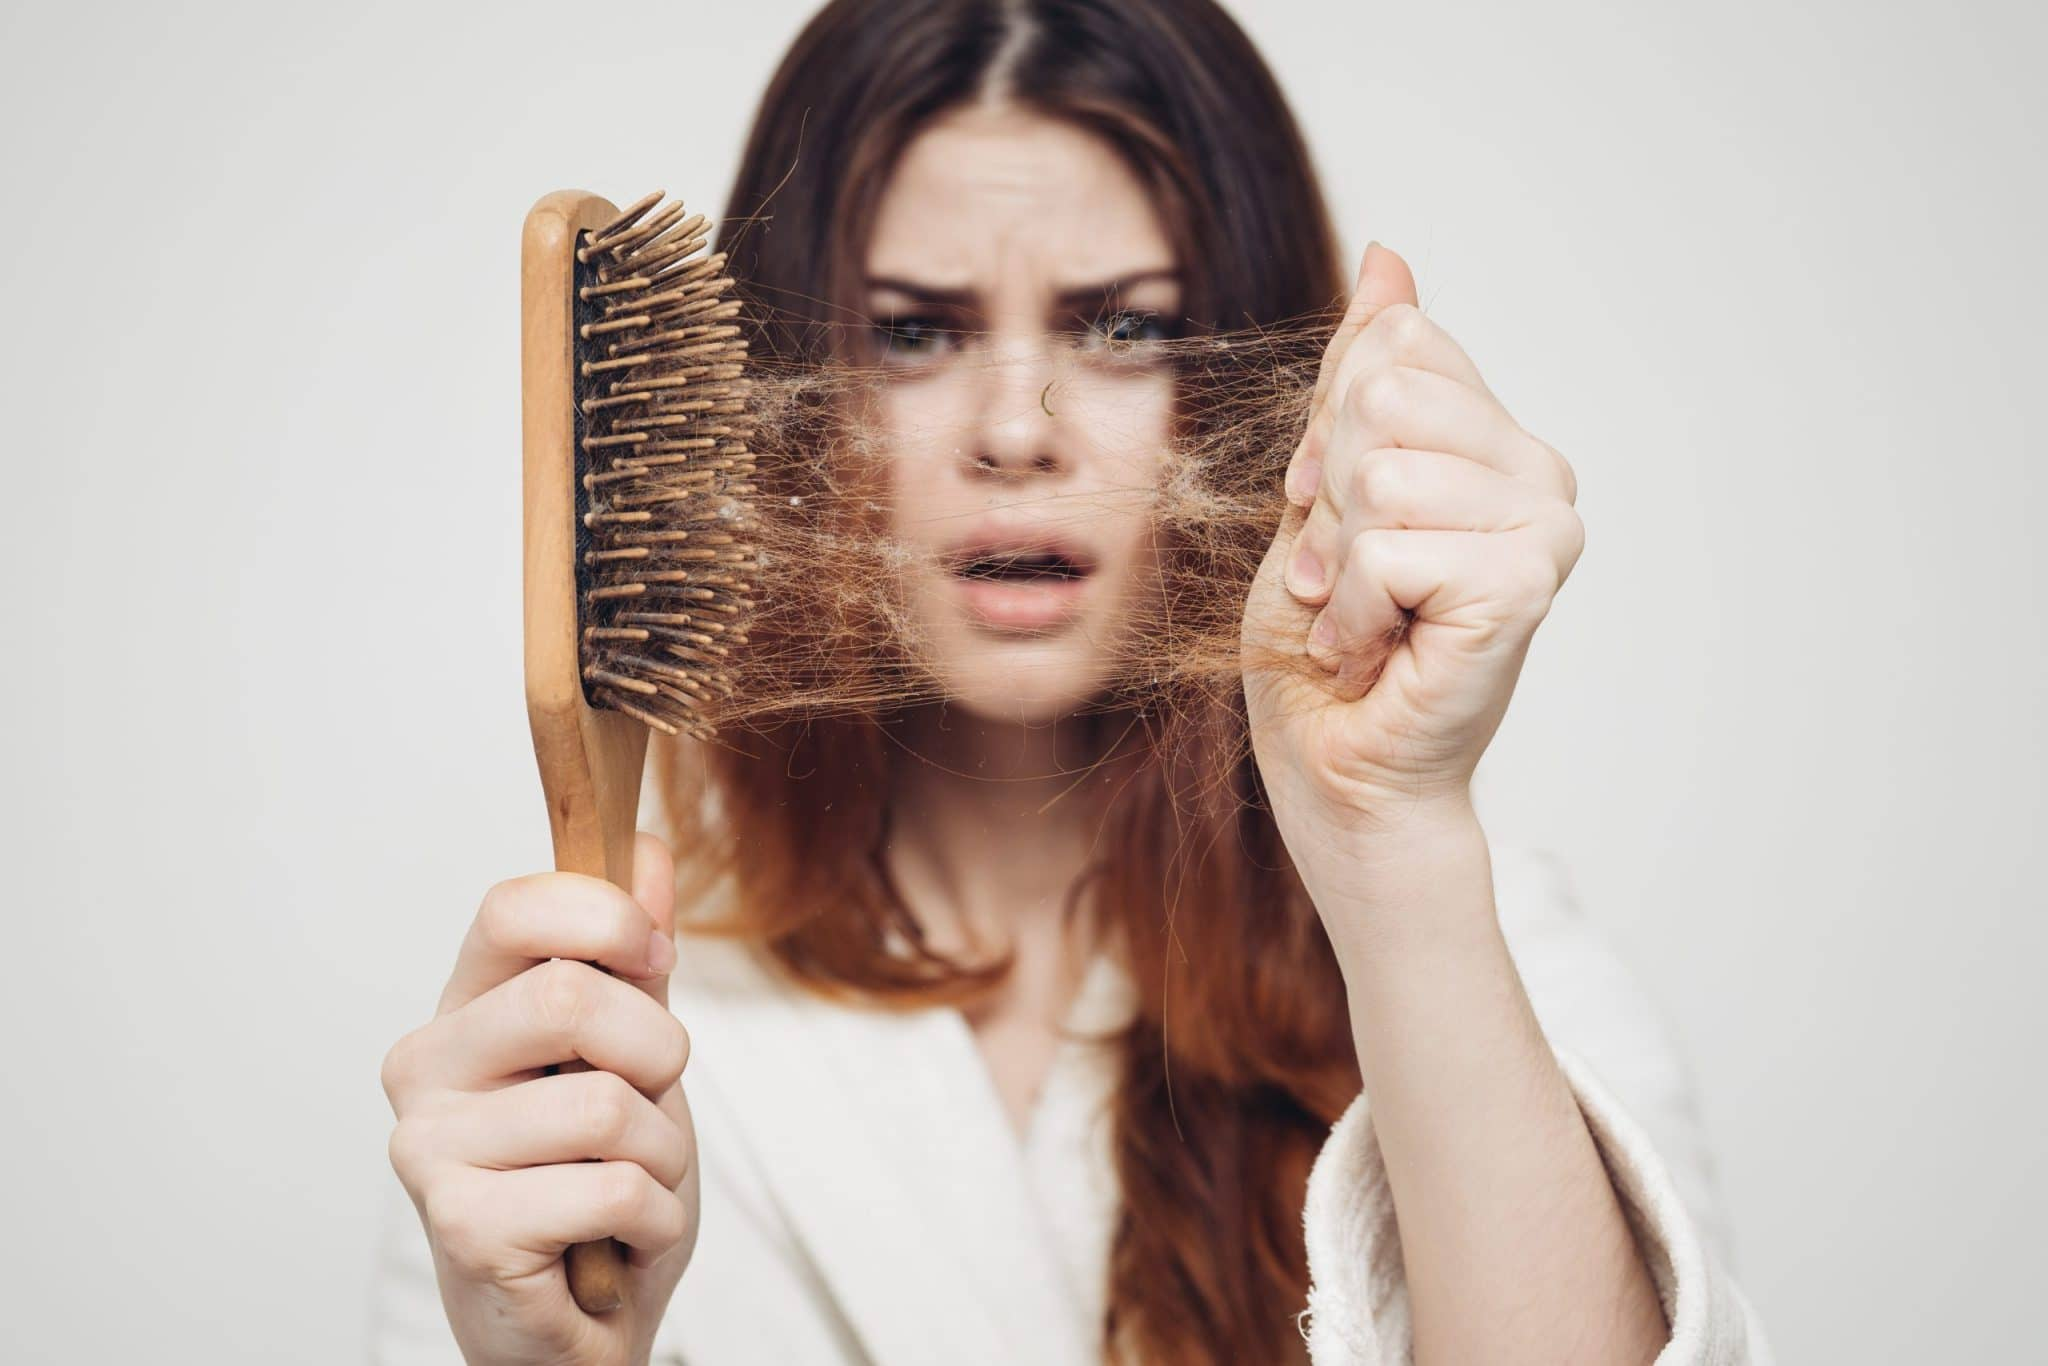 girl with a comb pulling out hair